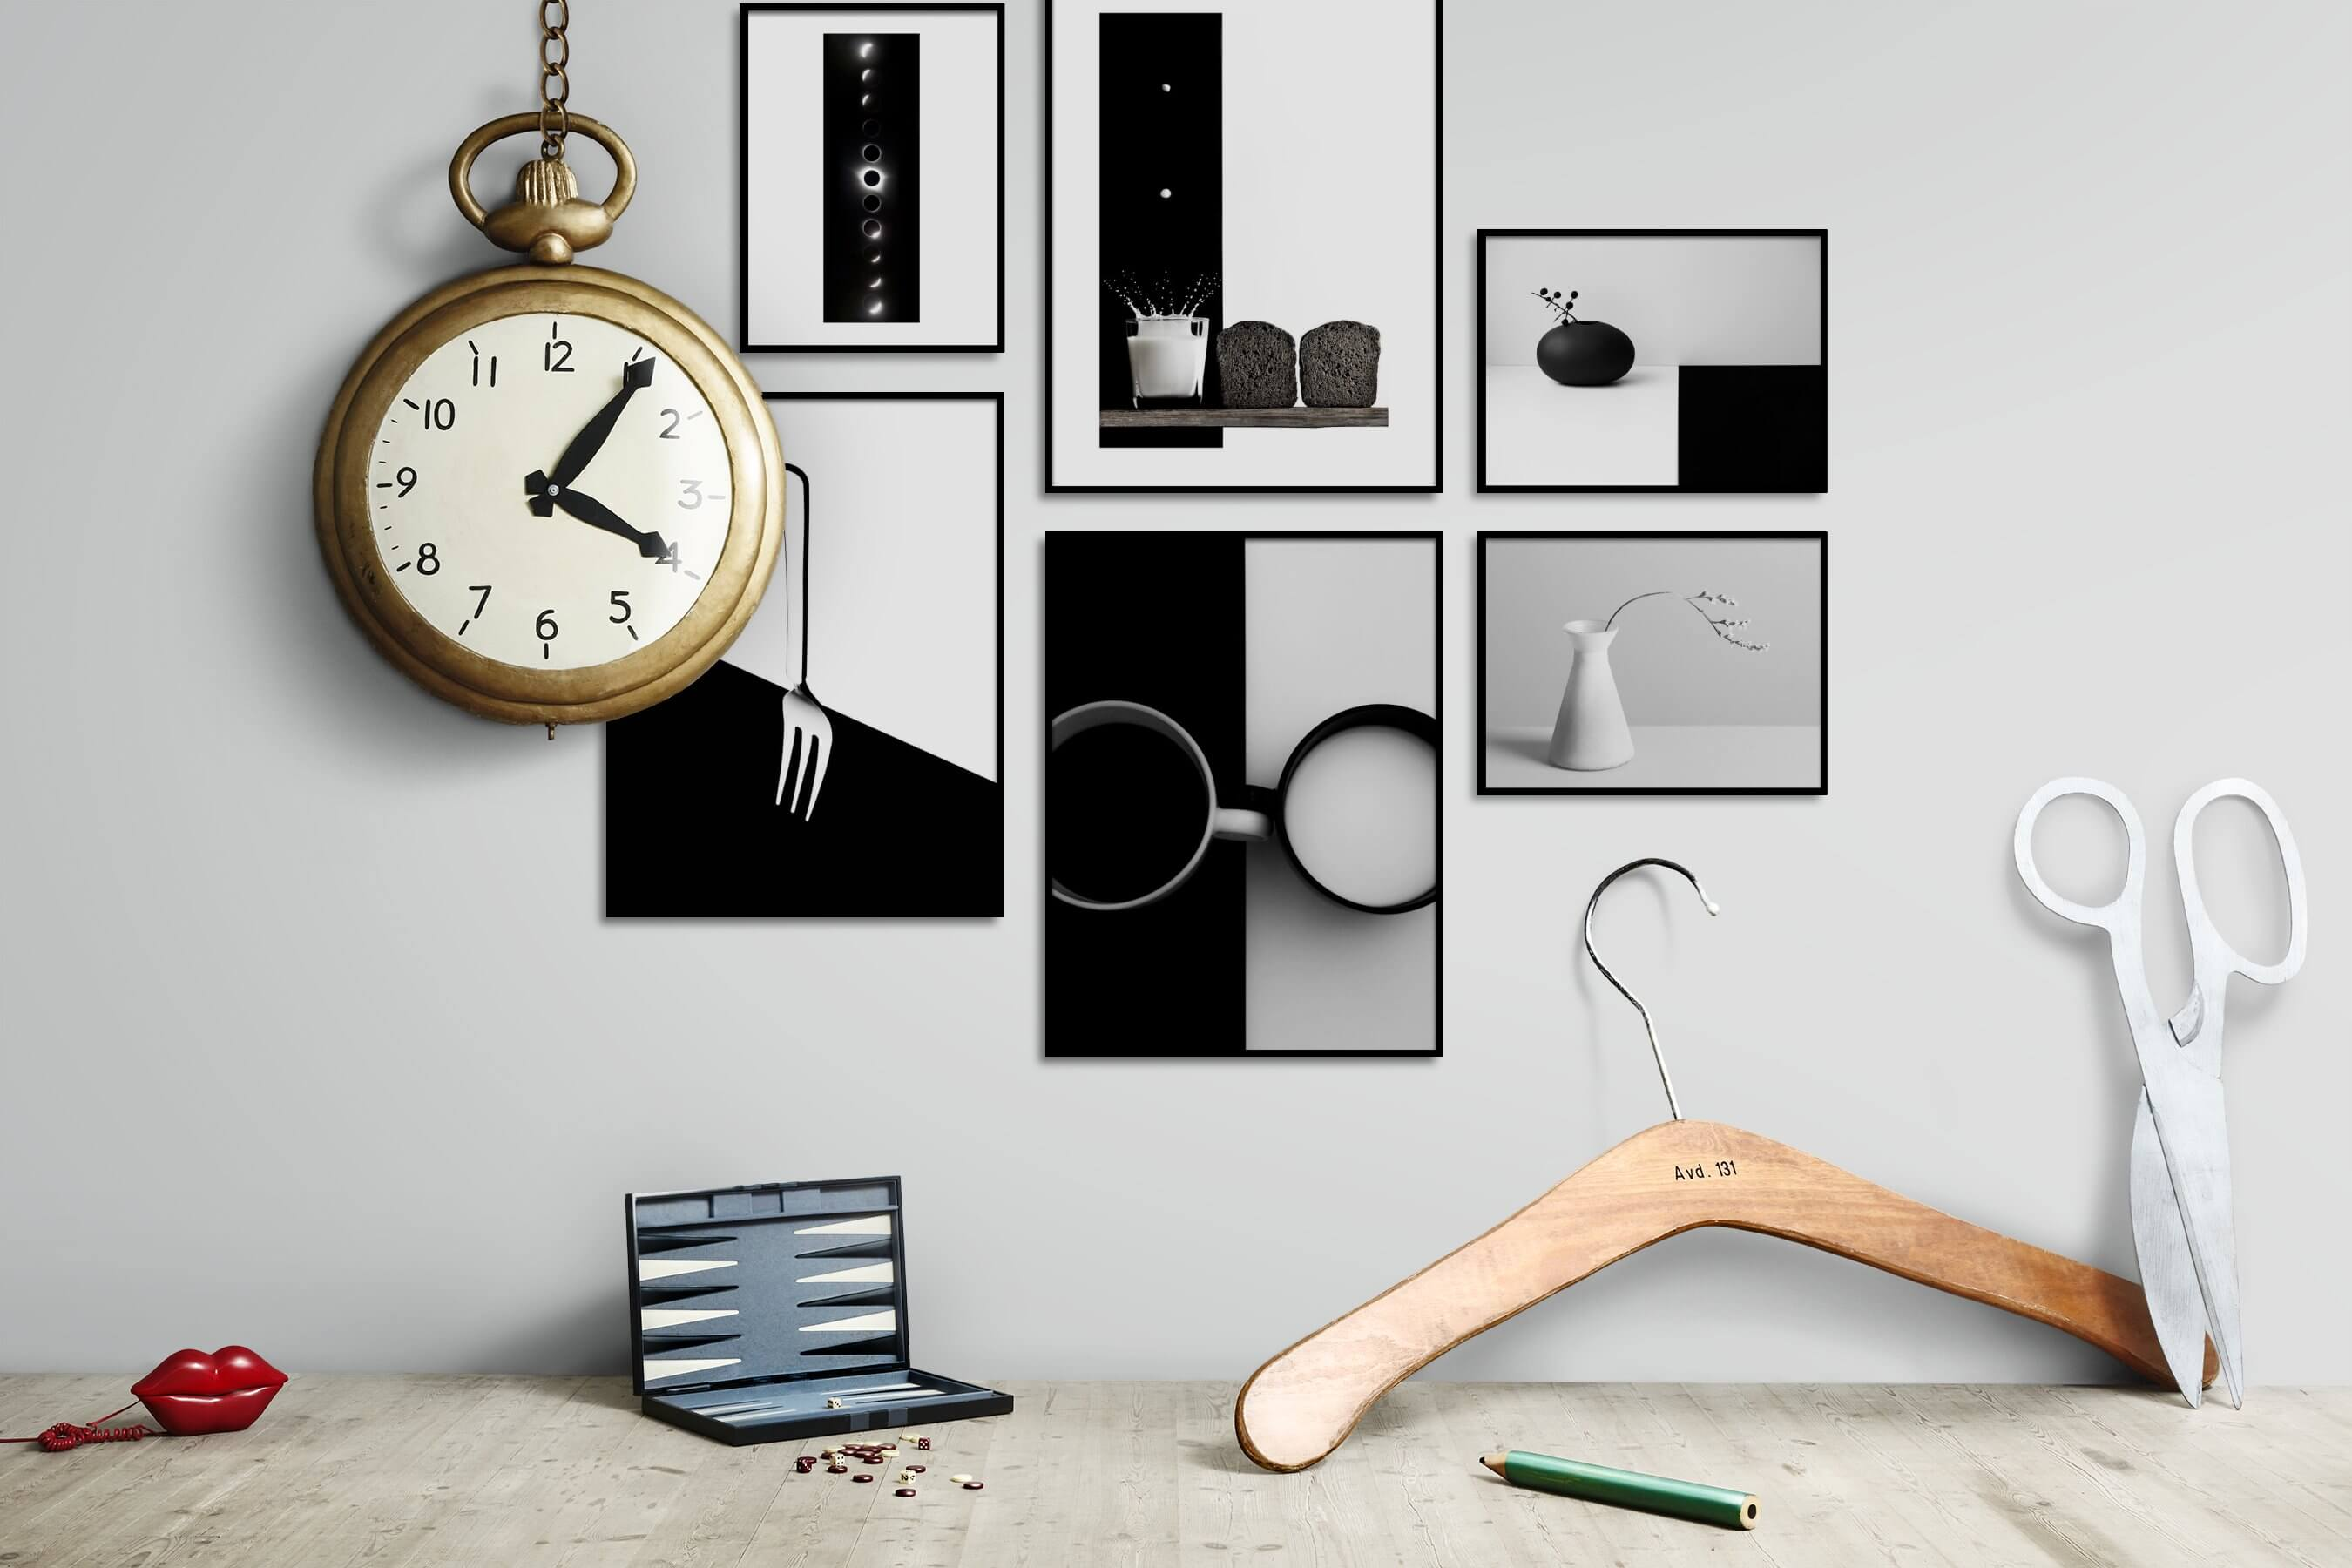 Gallery wall idea with six framed pictures arranged on a wall depicting Black & White, For the Minimalist, Nature, and Flowers & Plants